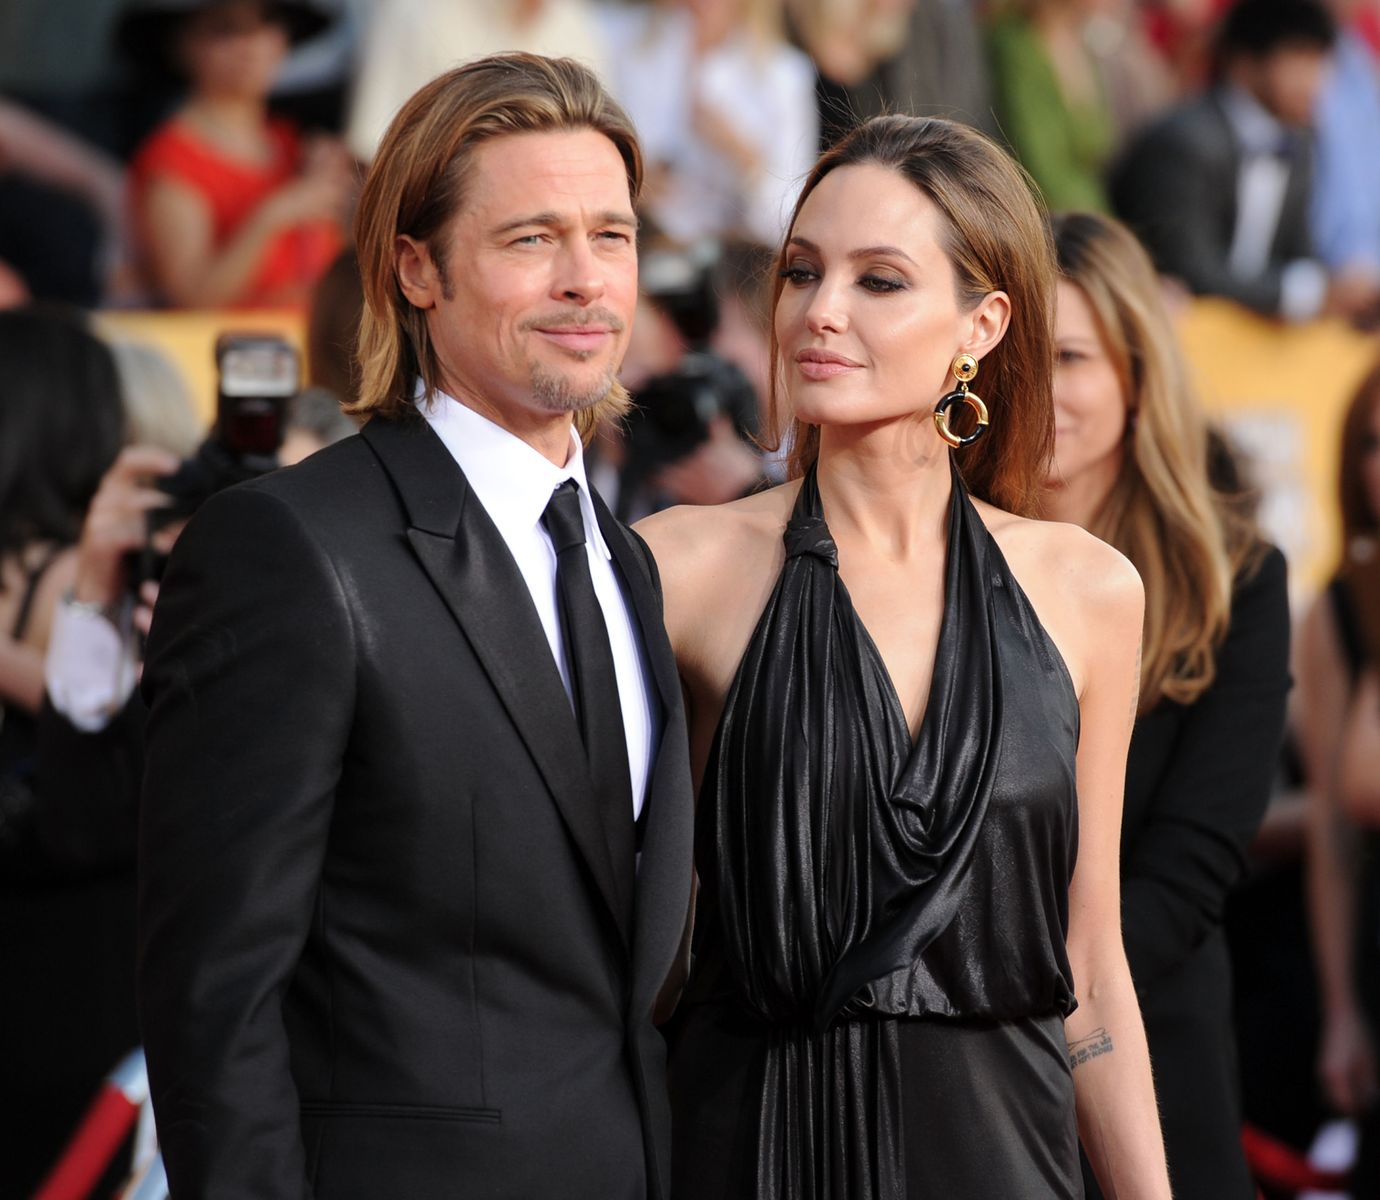 Brad Pitt and Angelina Jolie at the 18th Annual Screen Actors Guild Awards at The Shrine Auditorium on January 29, 2012 | Photo: Getty Images